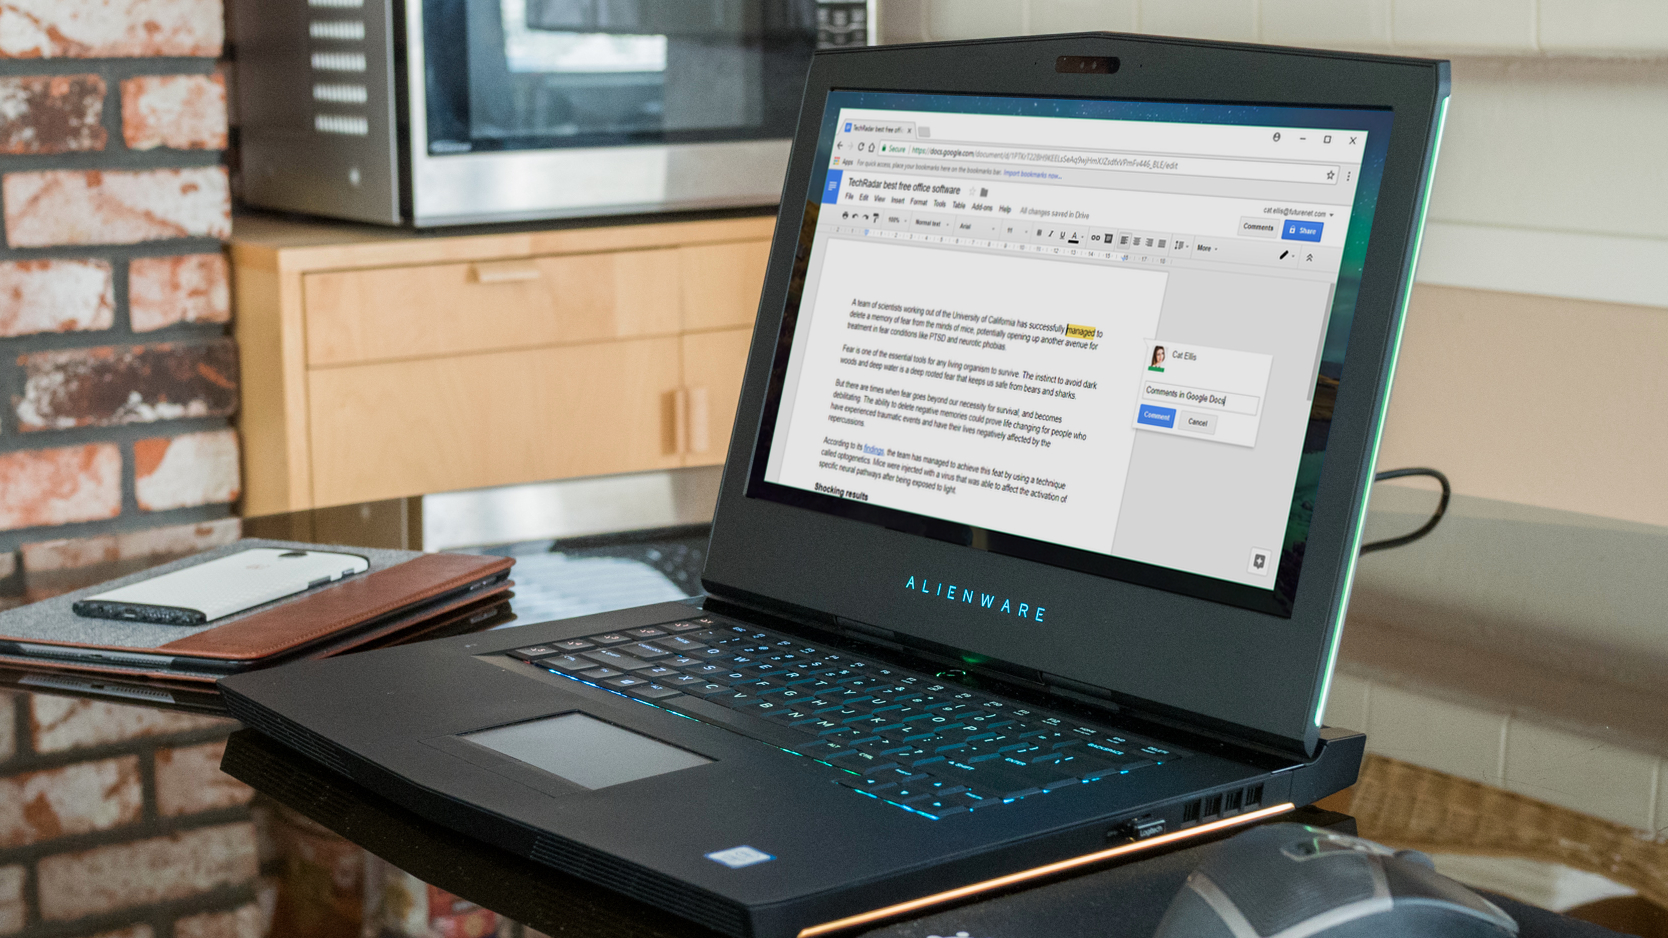 The best free office software 2019: alternatives to Word, PowerPoint and Excel